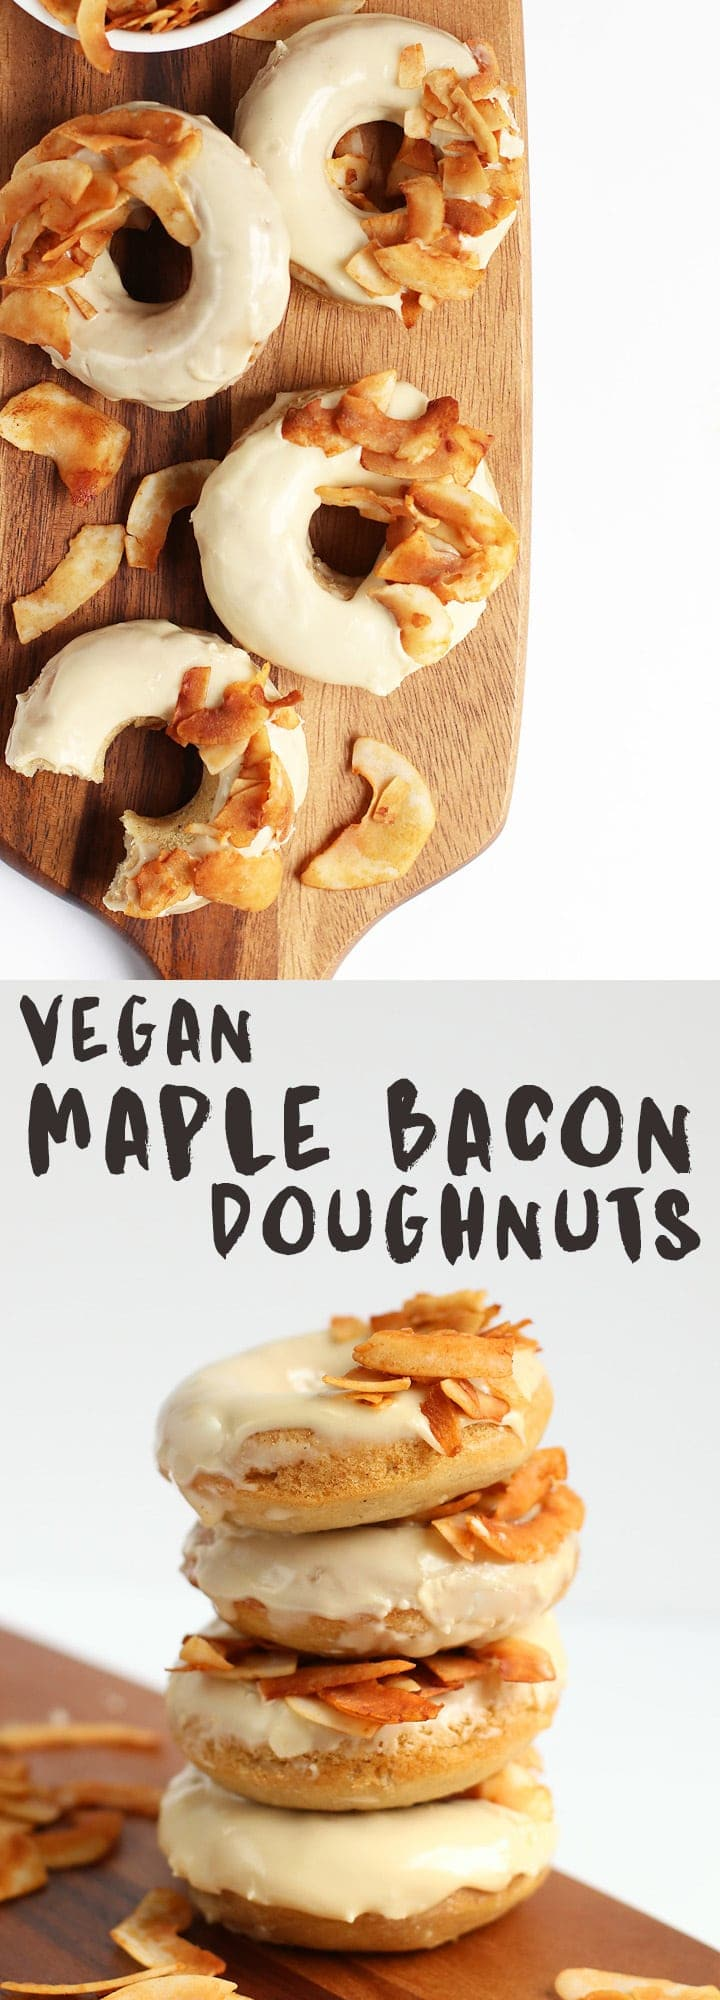 These vegan Maple Bacon Doughnuts are made with a soft baked doughnut topped with sweet maple glaze and coconut bacon for a delicious morning pastry.